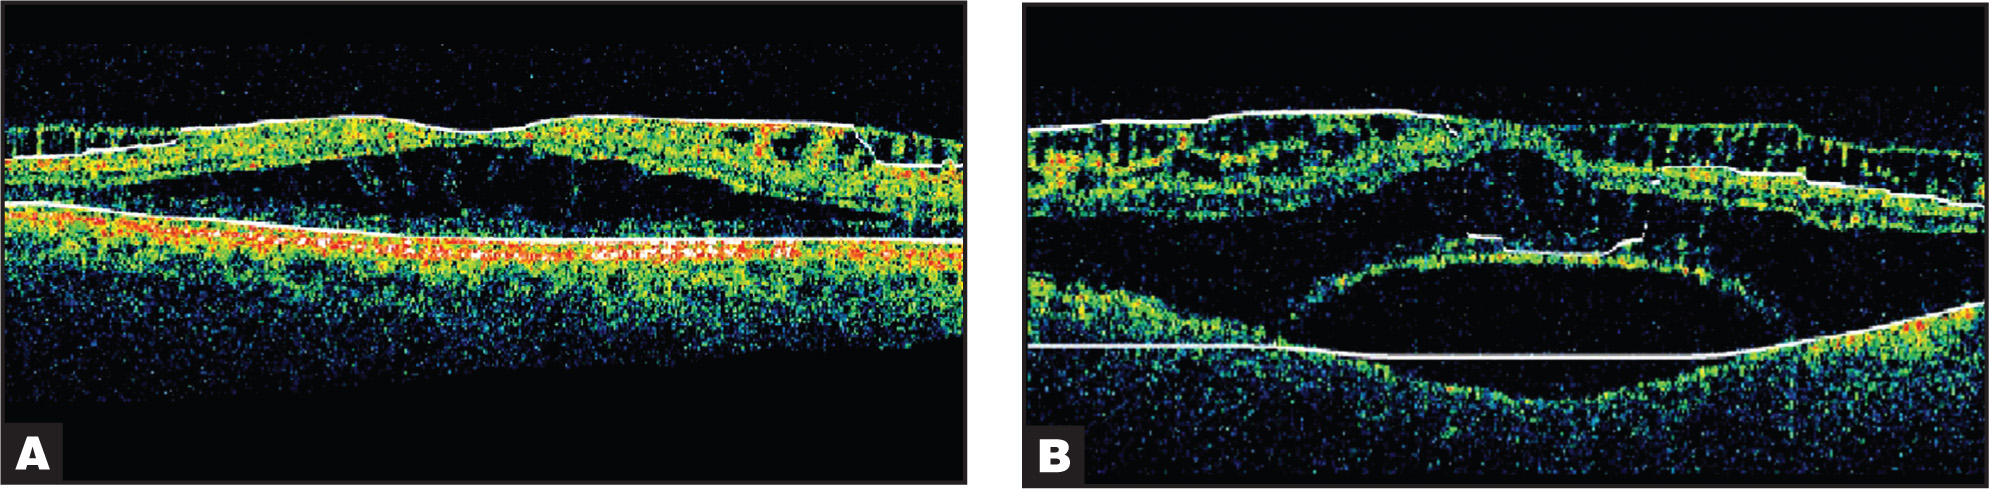 Optical Coherence Tomography of the (A) Right Eye Showing Almost No Difference from Previous Testing and the (B) Left Eye Showing the Formation of Subneurosensory Retinal Bulla-Formation and Maintenance of Previous Optical Coherence Tomography Changes Above Bulla. There Is No Evidence of Macular Hole Formation.